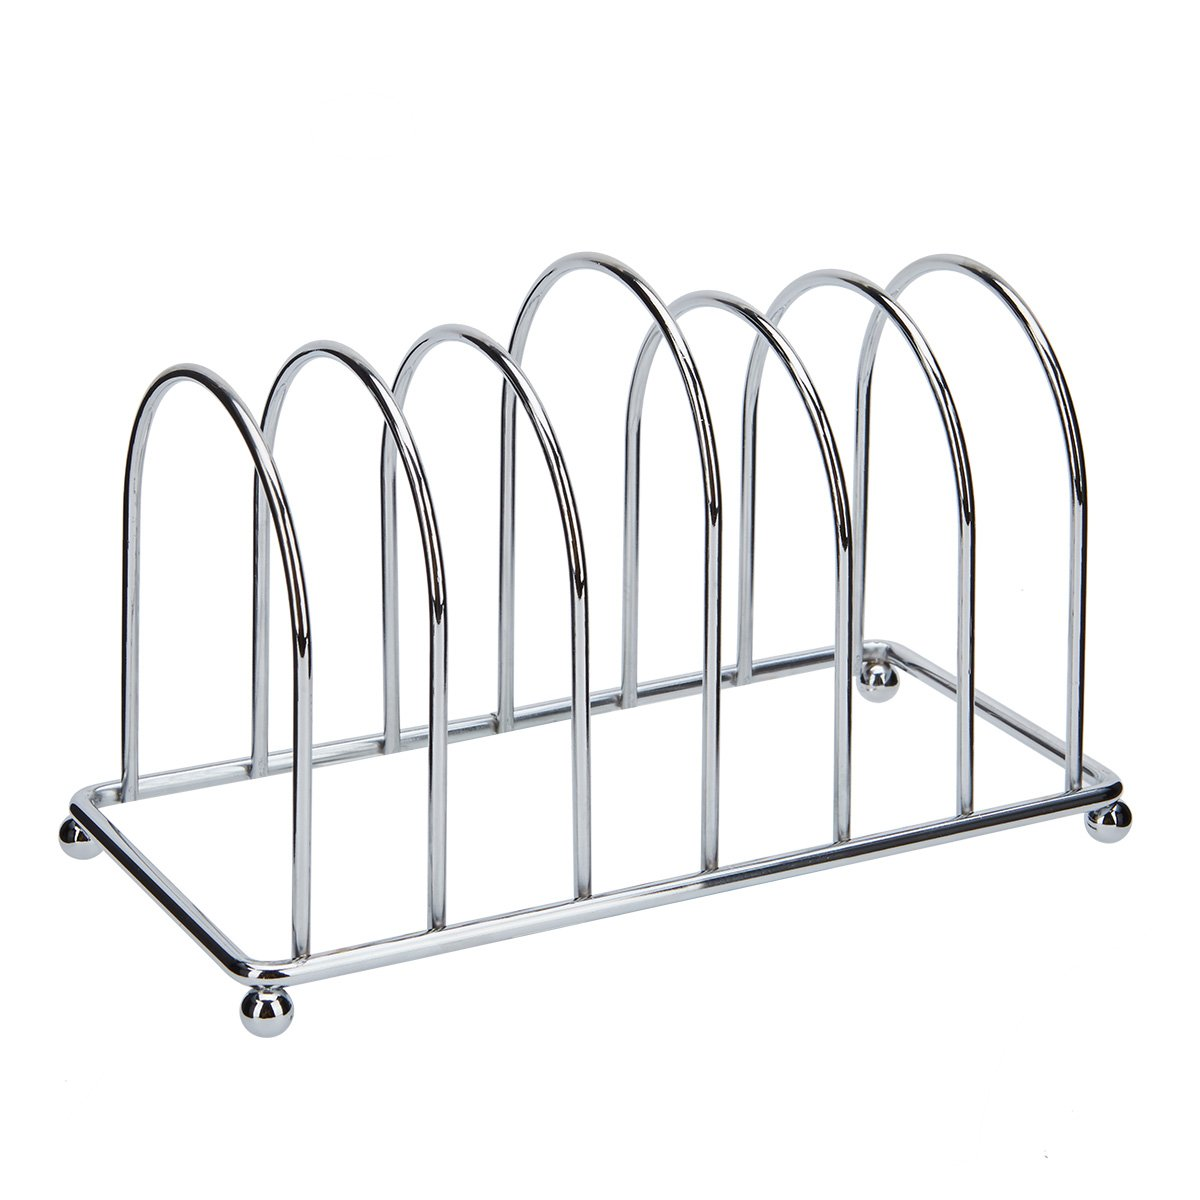 PINK inscriptions Chrome 6 SLICE Toast Rack New Year discount.